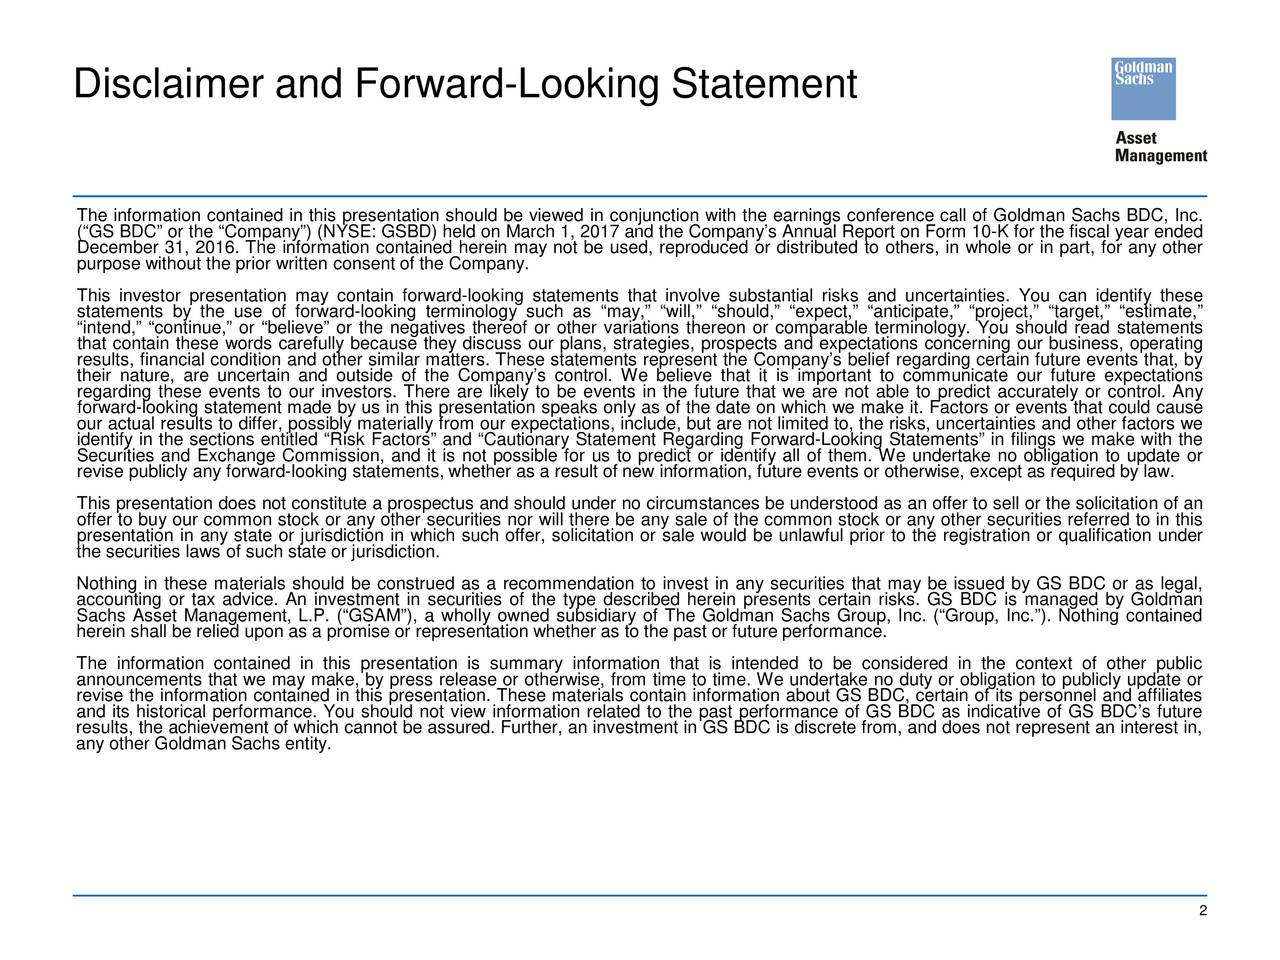 The information contained in this presentation should be viewed in conjunction with the earnings conference call of Goldman Sachs BDC, Inc. (GS BDC or the Company) (NYSE: GSBD) held on March 1, 2017 and the Companys Annual Report on Form 10-K for the fiscal year ended December 31, 2016. The information contained herein may not be used, reproduced or distributed to others, in whole or in part, for any other purpose without the prior written consent of the Company. This investor presentation may contain forward-looking statements that involve substantial risks and uncertainties. You can identify these statements by the use of forward-looking terminology such as may, will, should, expect, anticipate, project, target, estimate, intend, continue, or believe or the negatives thereof or other variations thereon or comparable terminology. You should read statements that contain these words carefully because they discuss our plans, strategies, prospects and expectations concerning our business, operating results, financial condition and other similar matters. These statements represent the Companys belief regarding certain future events that, by their nature, are uncertain and outside of the Companys control. We believe that it is important to communicate our future expectations regarding these events to our investors. There are likely to be events in the future that we are not able to predict accurately or control. Any our actual results to differ, possibly materially from our expectations, include, but are not limited to, the risks, uncertainties and other factors we identify in the sections entitled Risk Factors andautionary Statement Regarding Forward-Looking Statements in filings we make with the Securities and Exchange Commission, and it is not possible for us to predict or identify all of them. We undertake no obligation to update or revise publicly any forward-looking statements, whether as a result of new information, future events or otherwise, except as required b